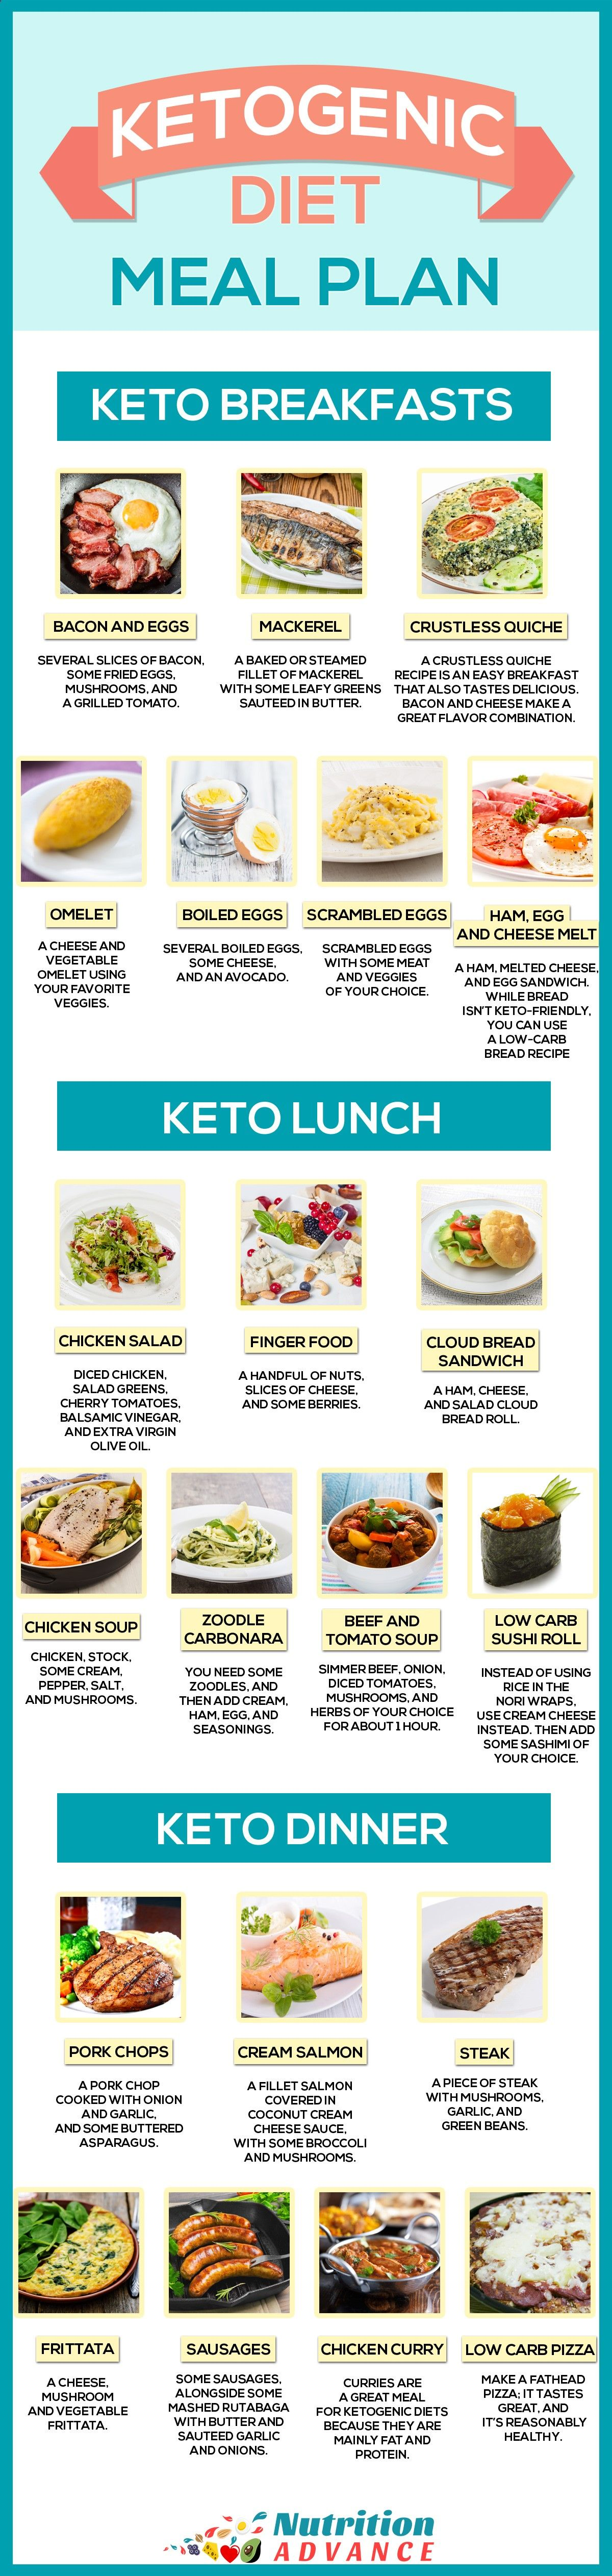 Ketogenic Diet Meal Plan For 7 Days This Infographic Shows Some Ideas For A Keto Breakfast Lunch And Dinner A Ketogenic Diet Meal Plan Keto Meal Plan Diet